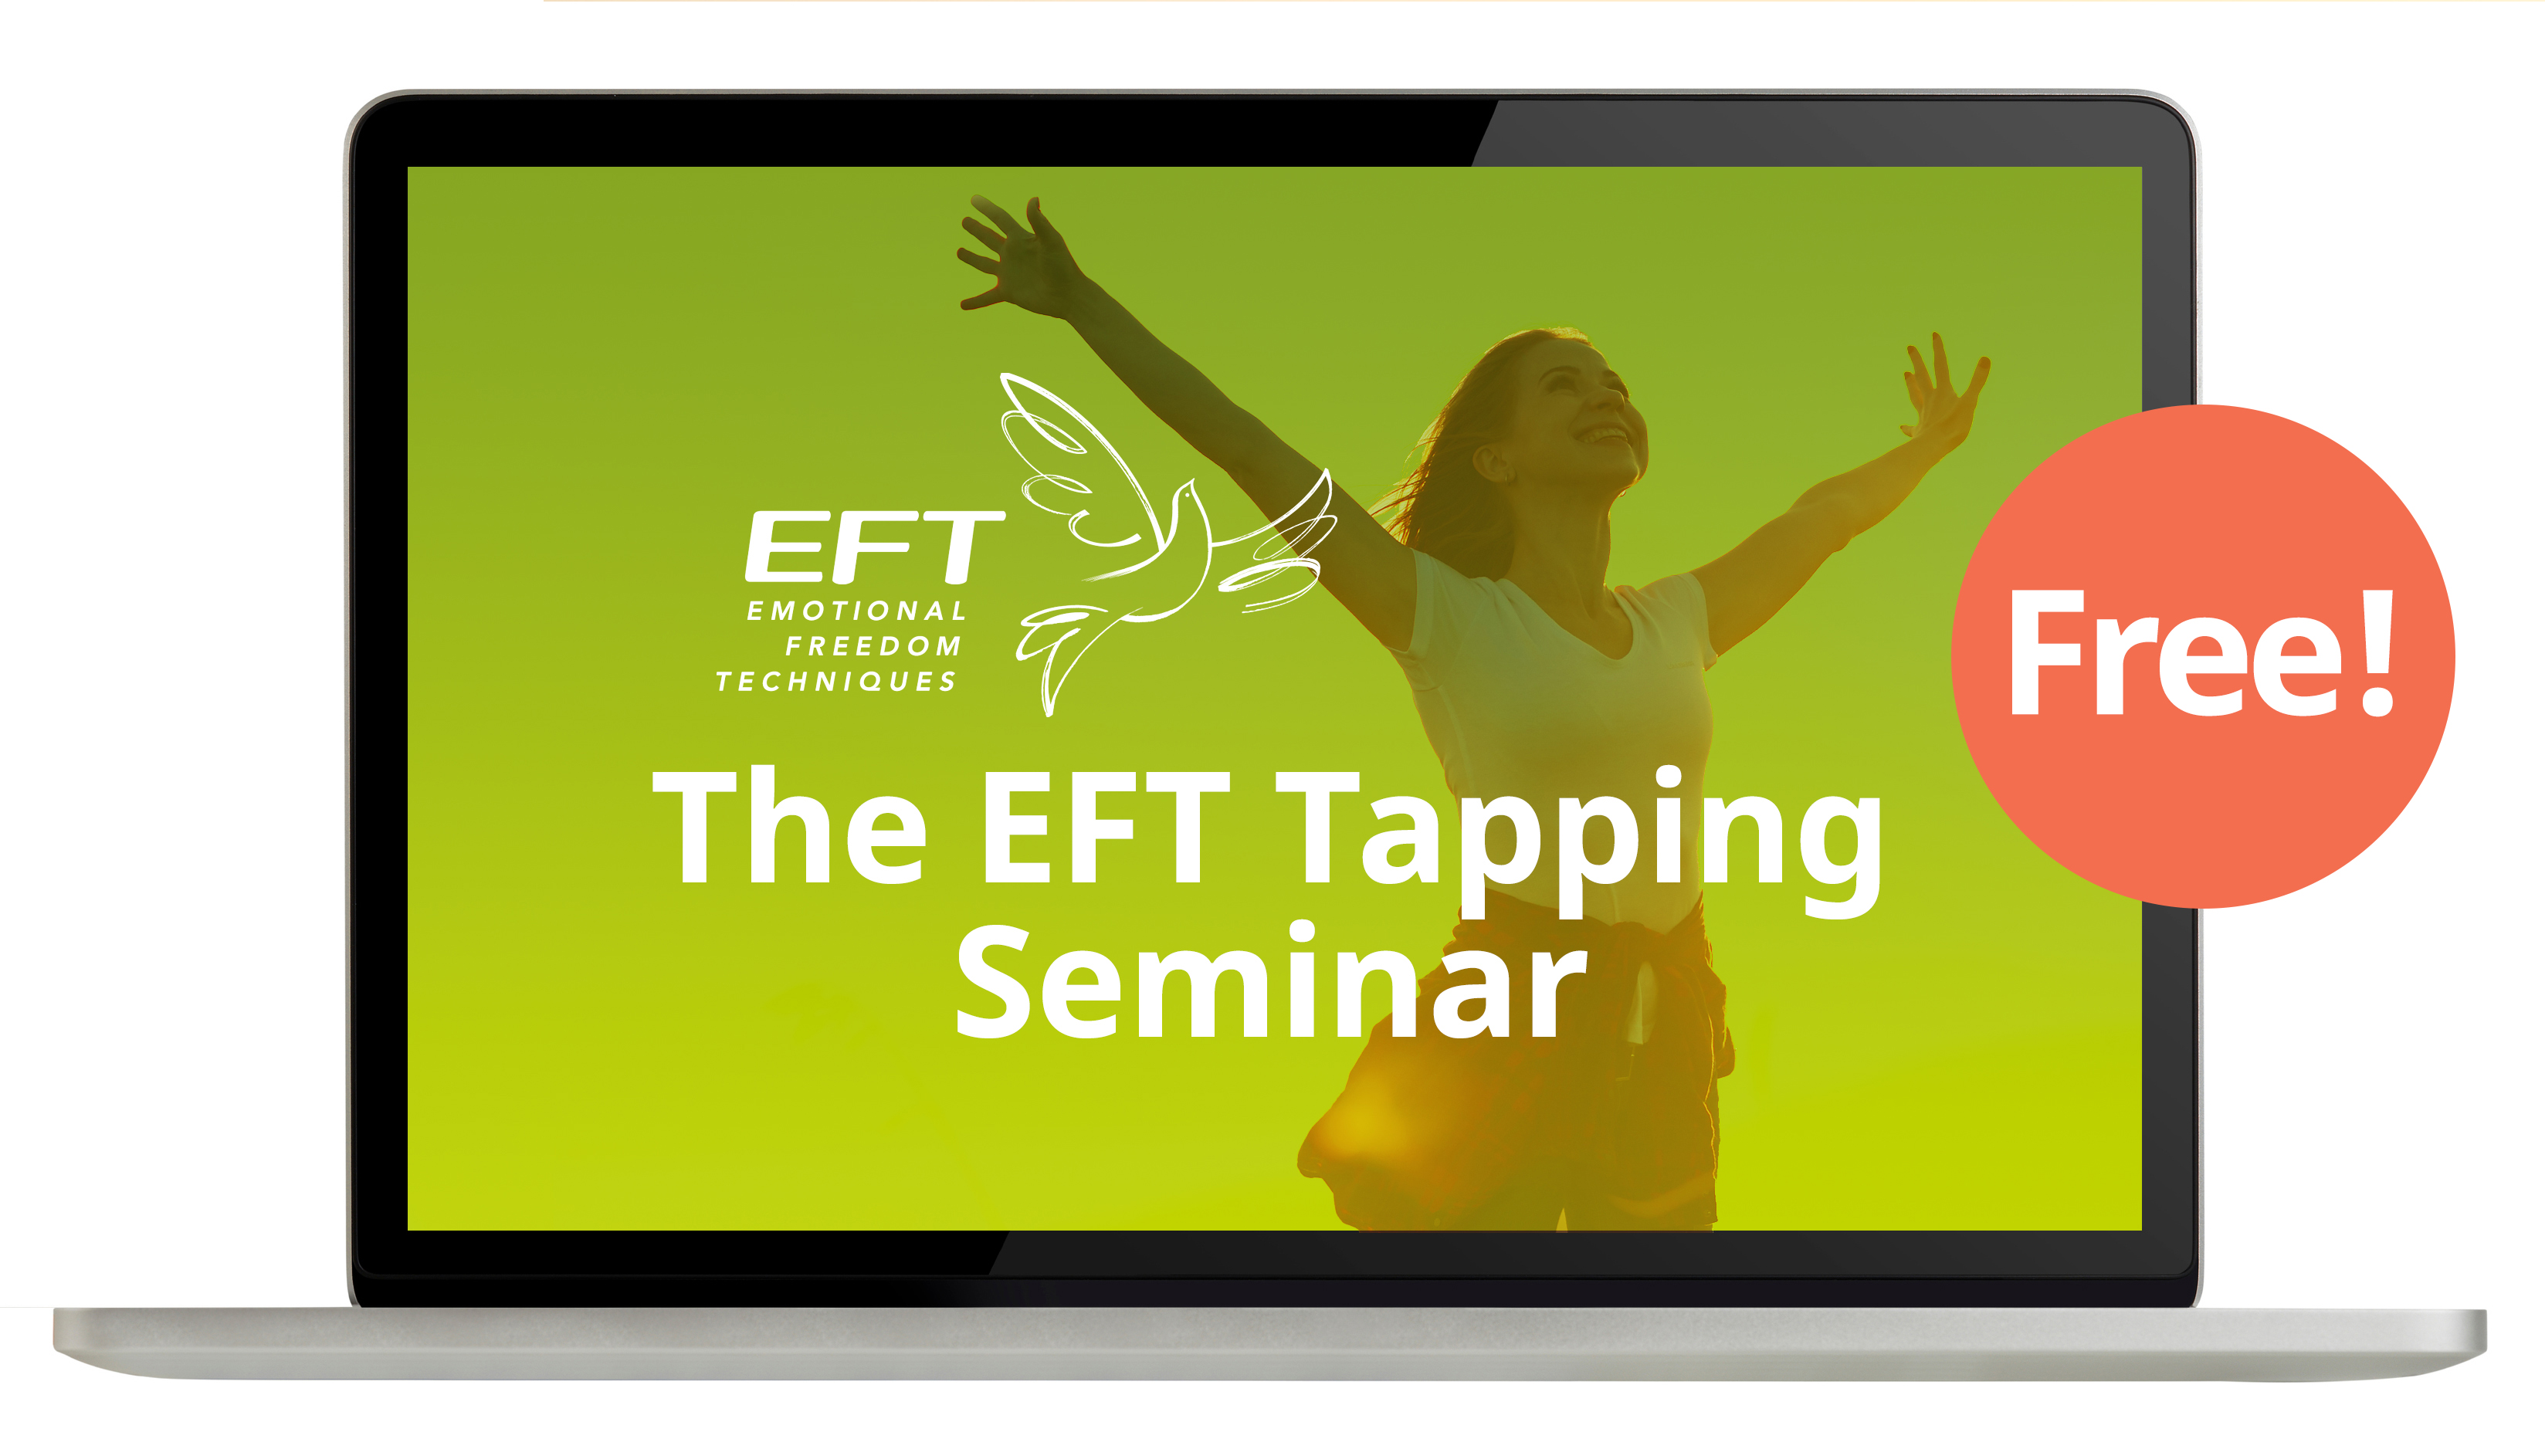 The EFT Tapping Seminar - Free!